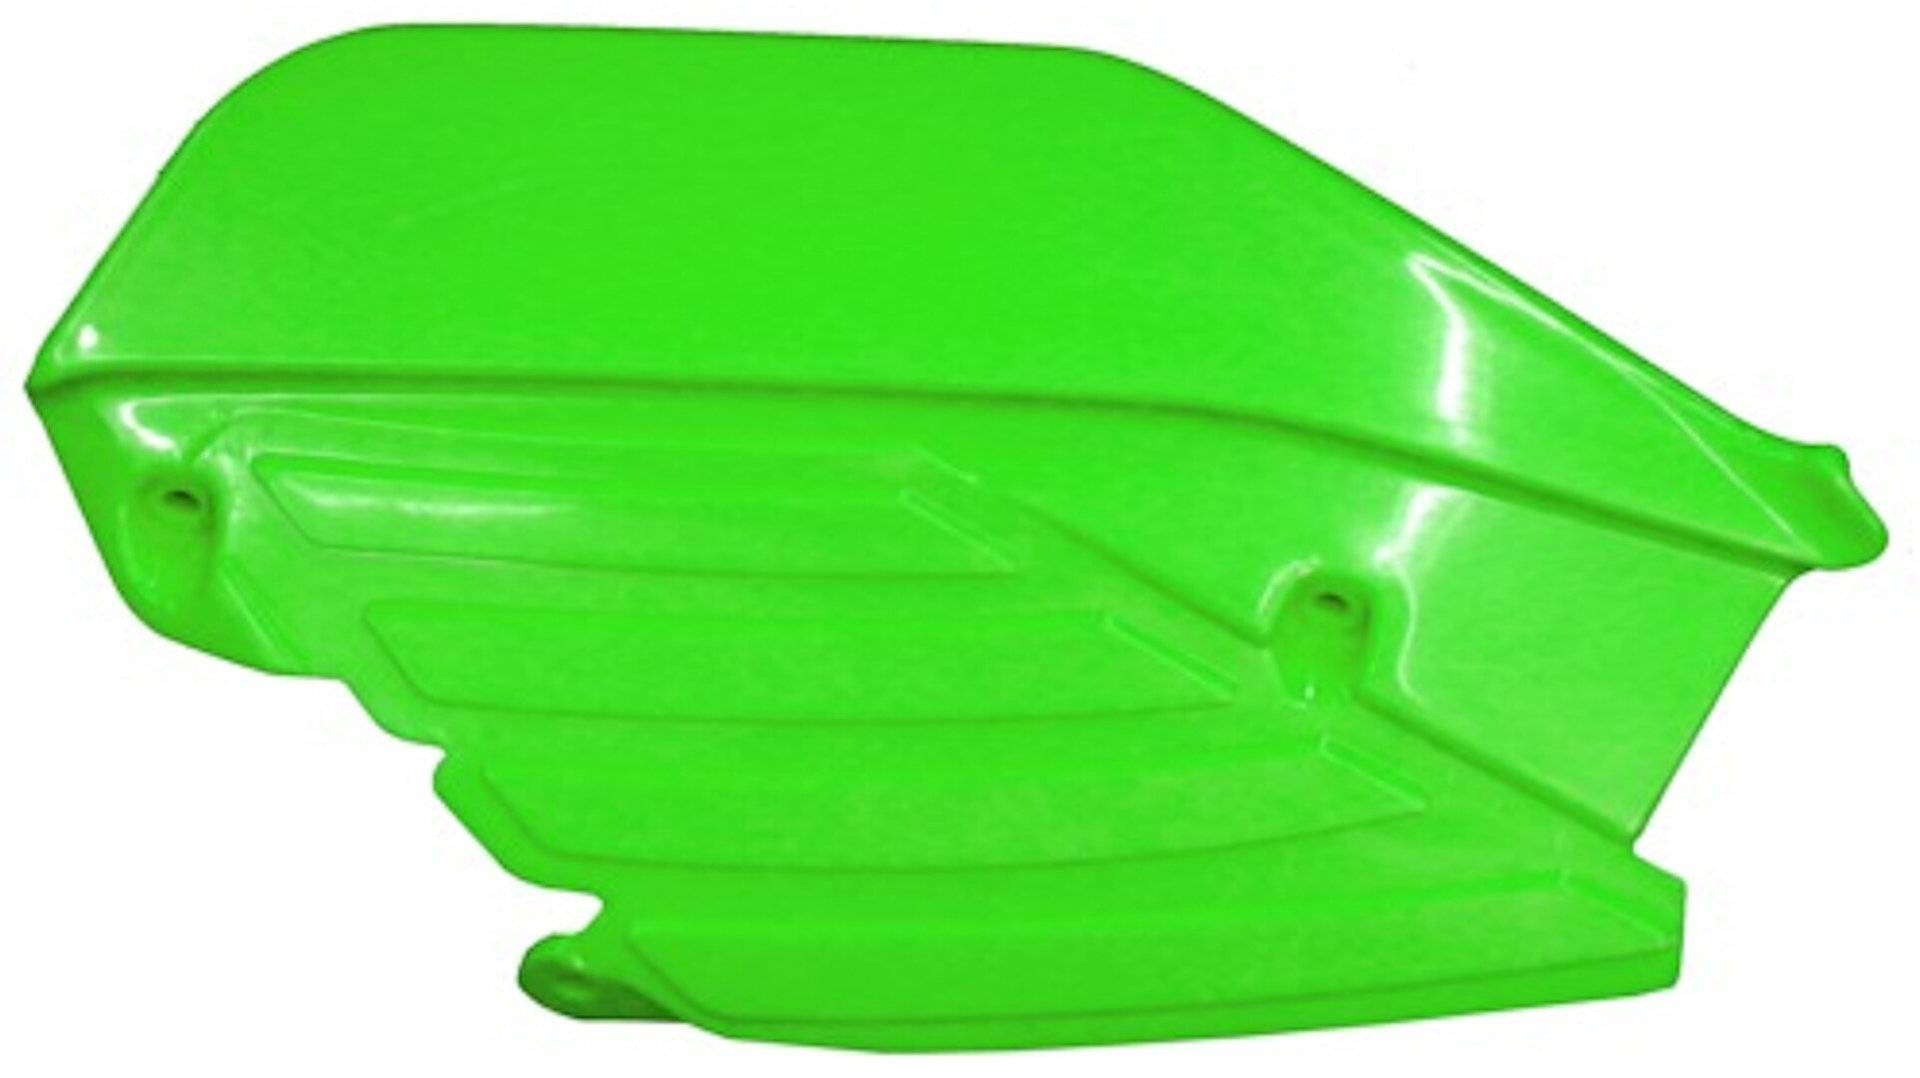 Acerbis X-Force Hand Guard Cover, green, green, Size One Size from Acerbis